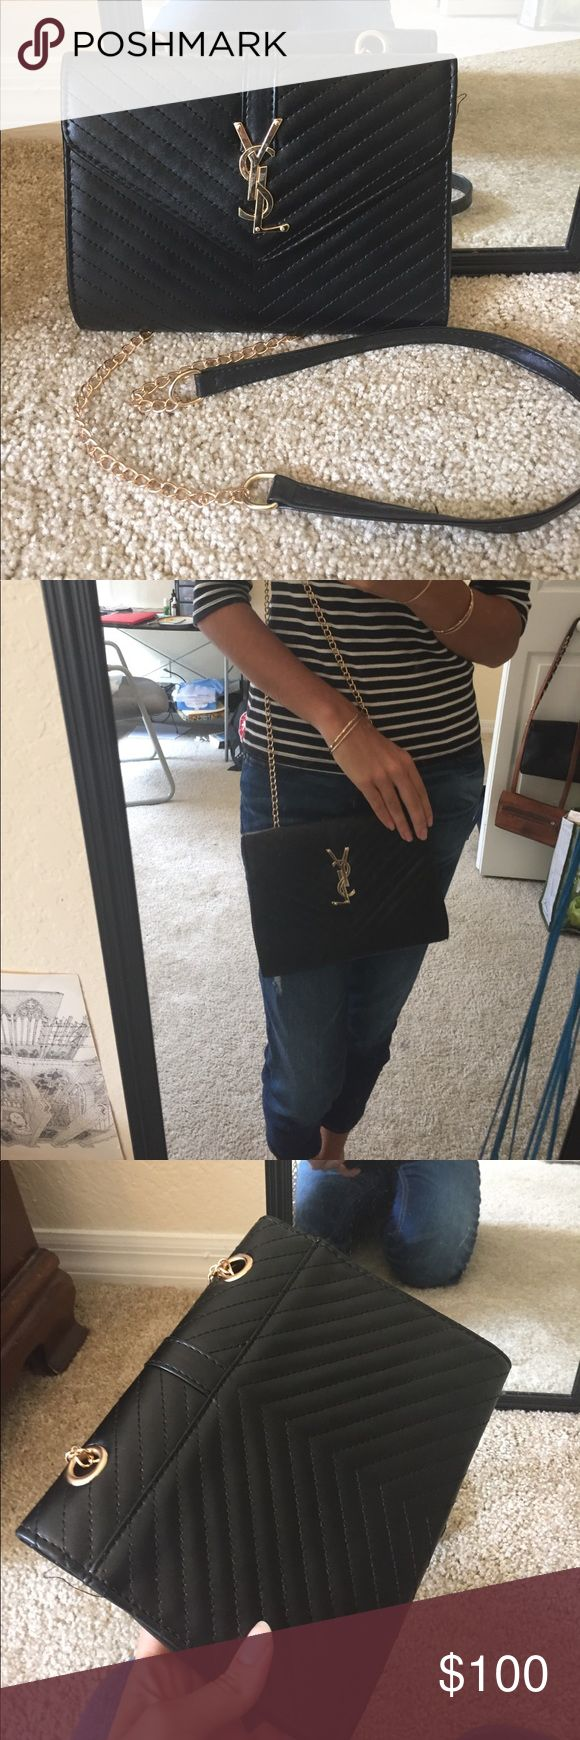 ysl letters black purse brand new bag for sale brand used for exposure Yves Saint Laurent Bags Shoulder Bags